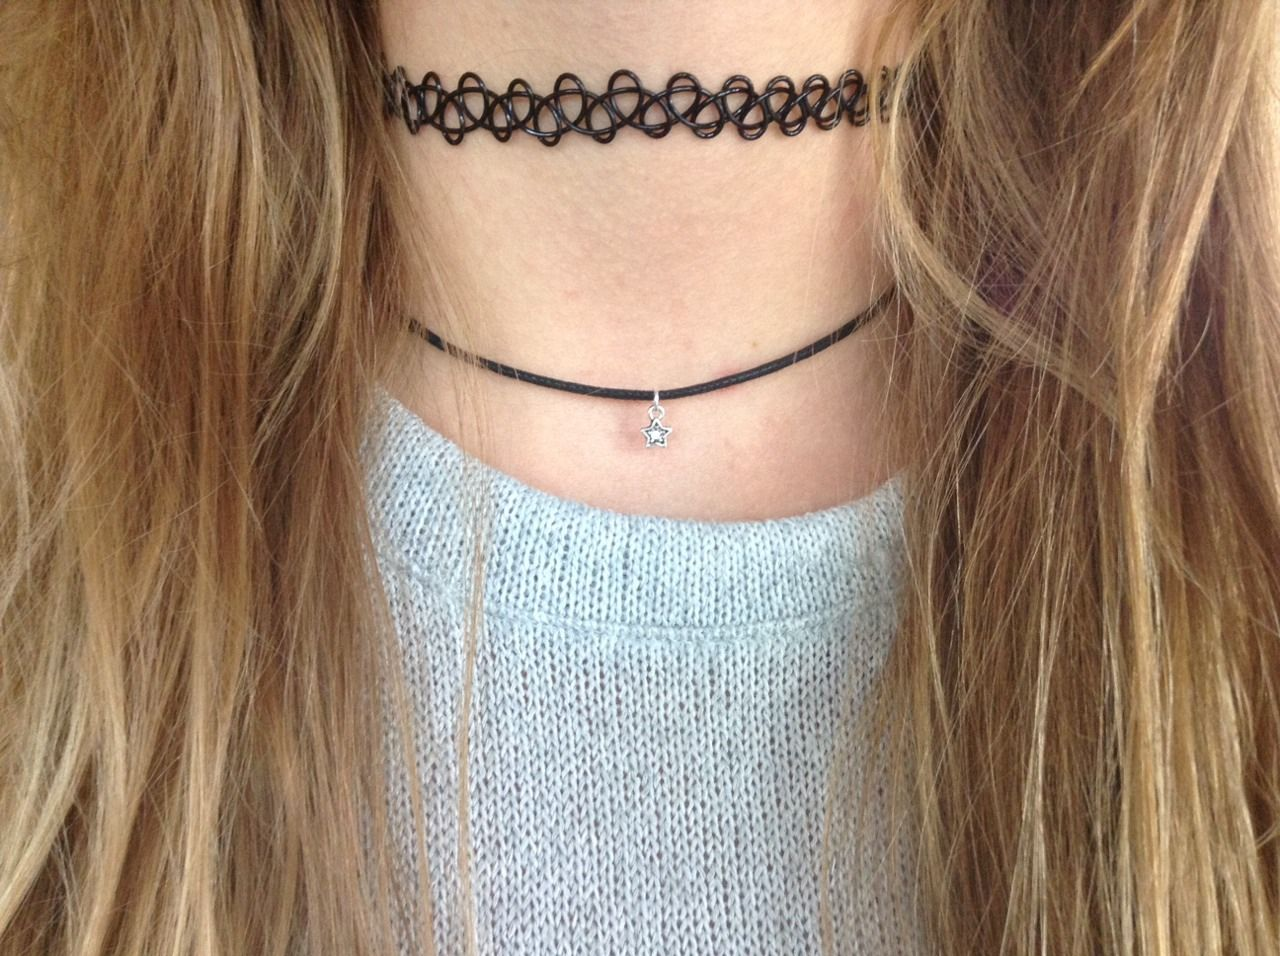 perf... anyone know where I can get this